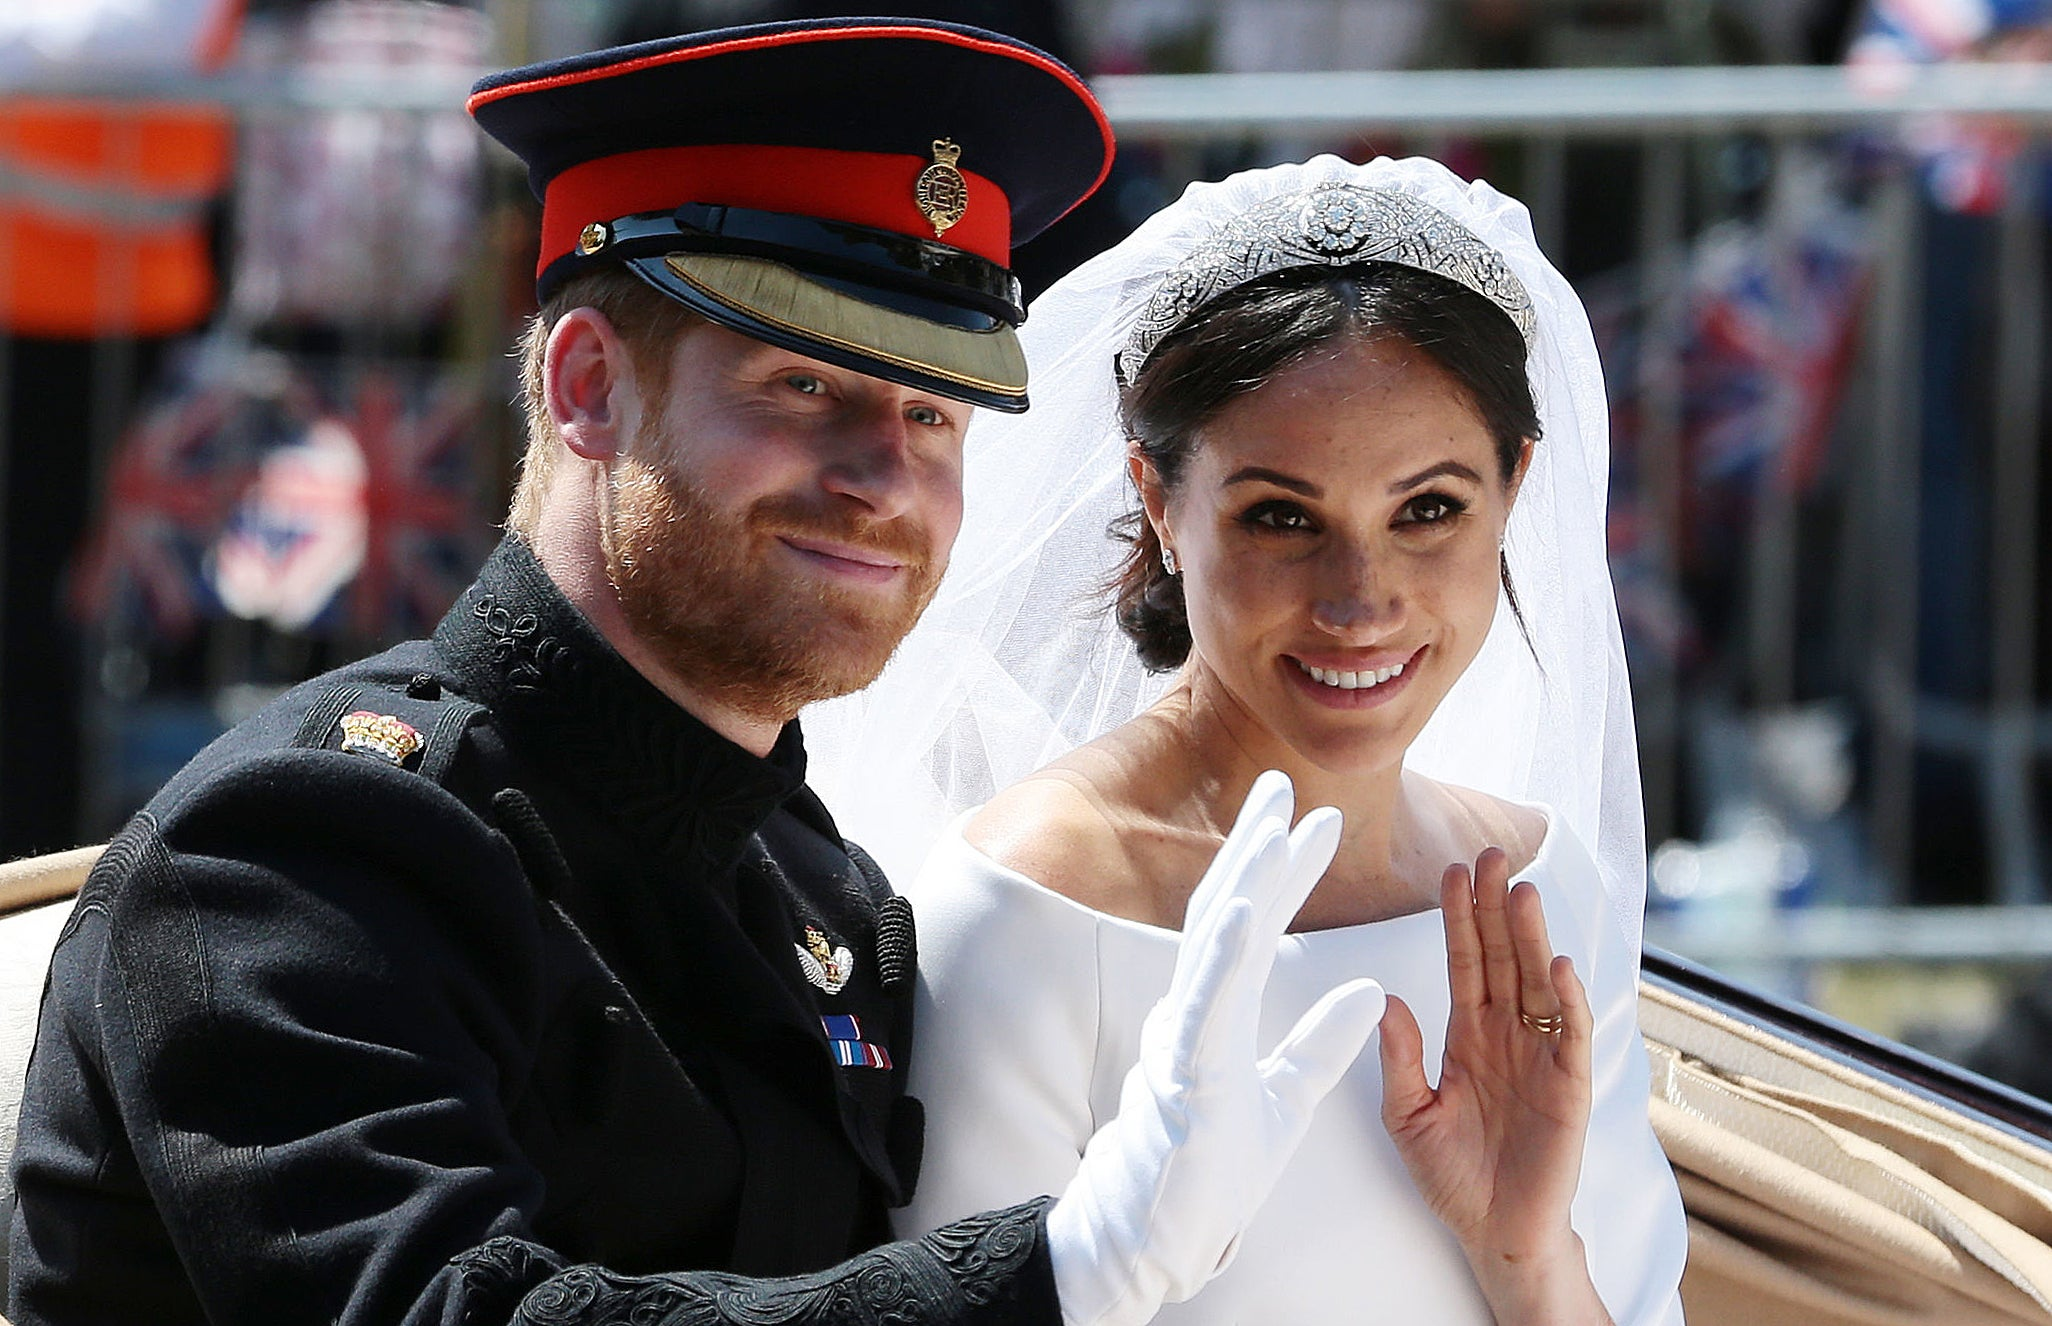 Meghan Markle and Prince Harry should repay £5m to British taxpayers, say campaigners